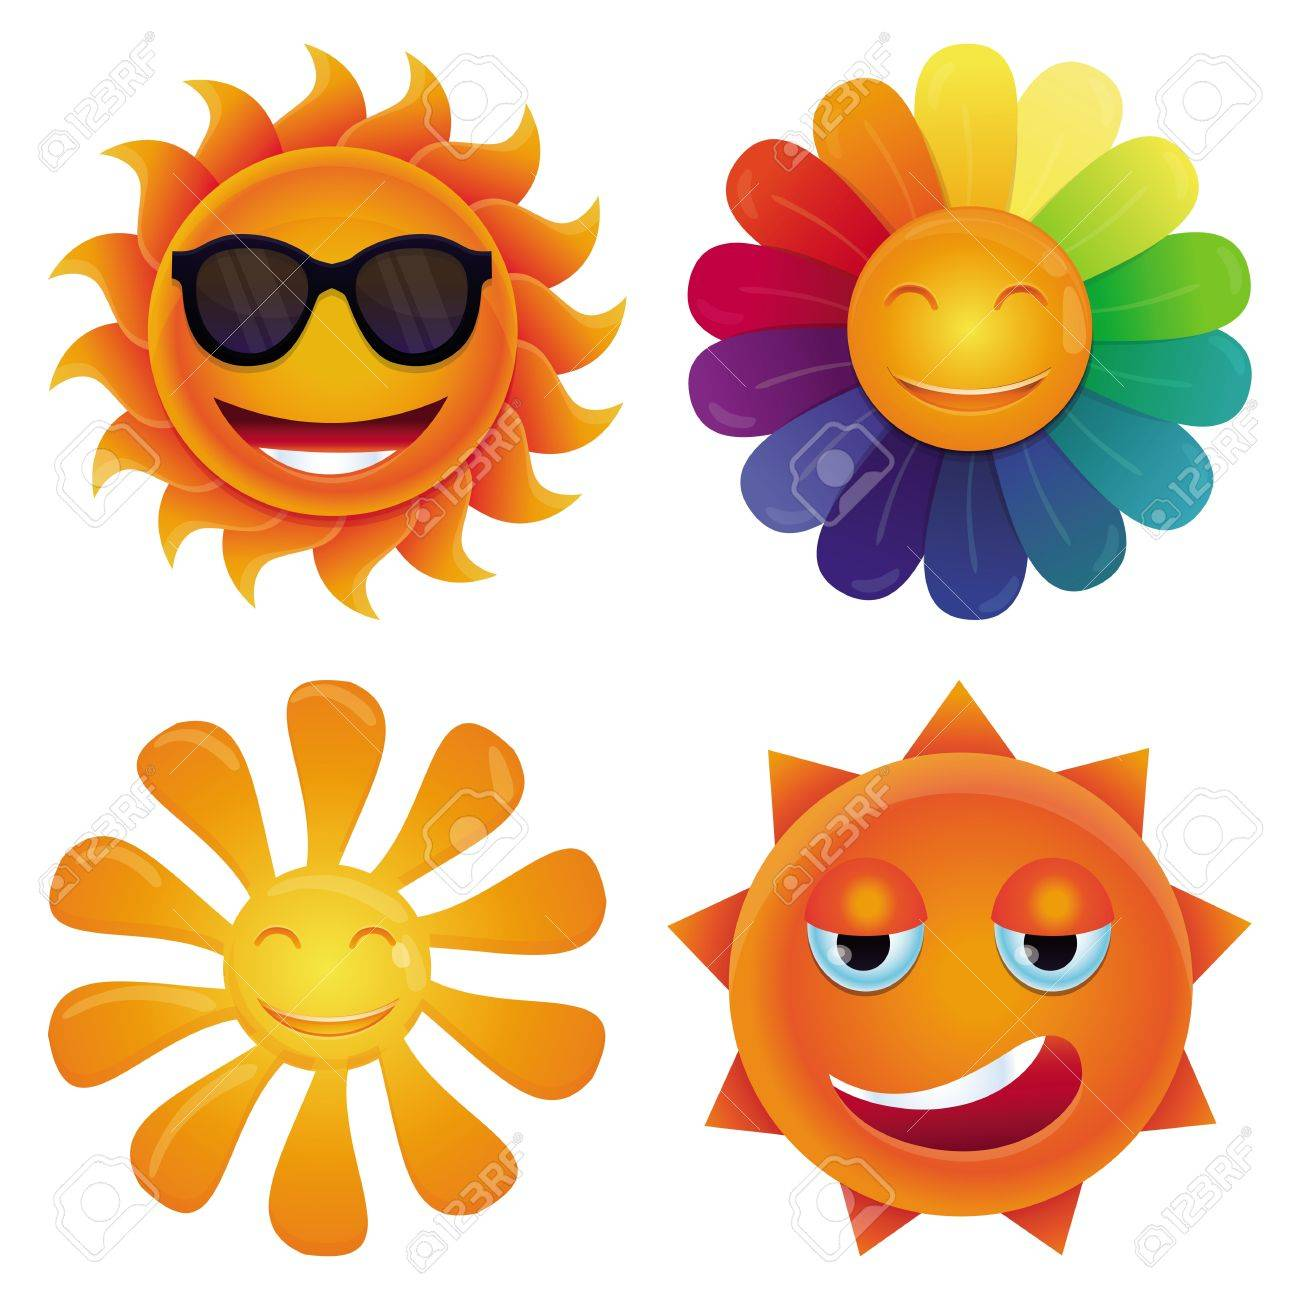 cartoon sun - with circle face and hipster sunglasses Stock Vector - 20331811